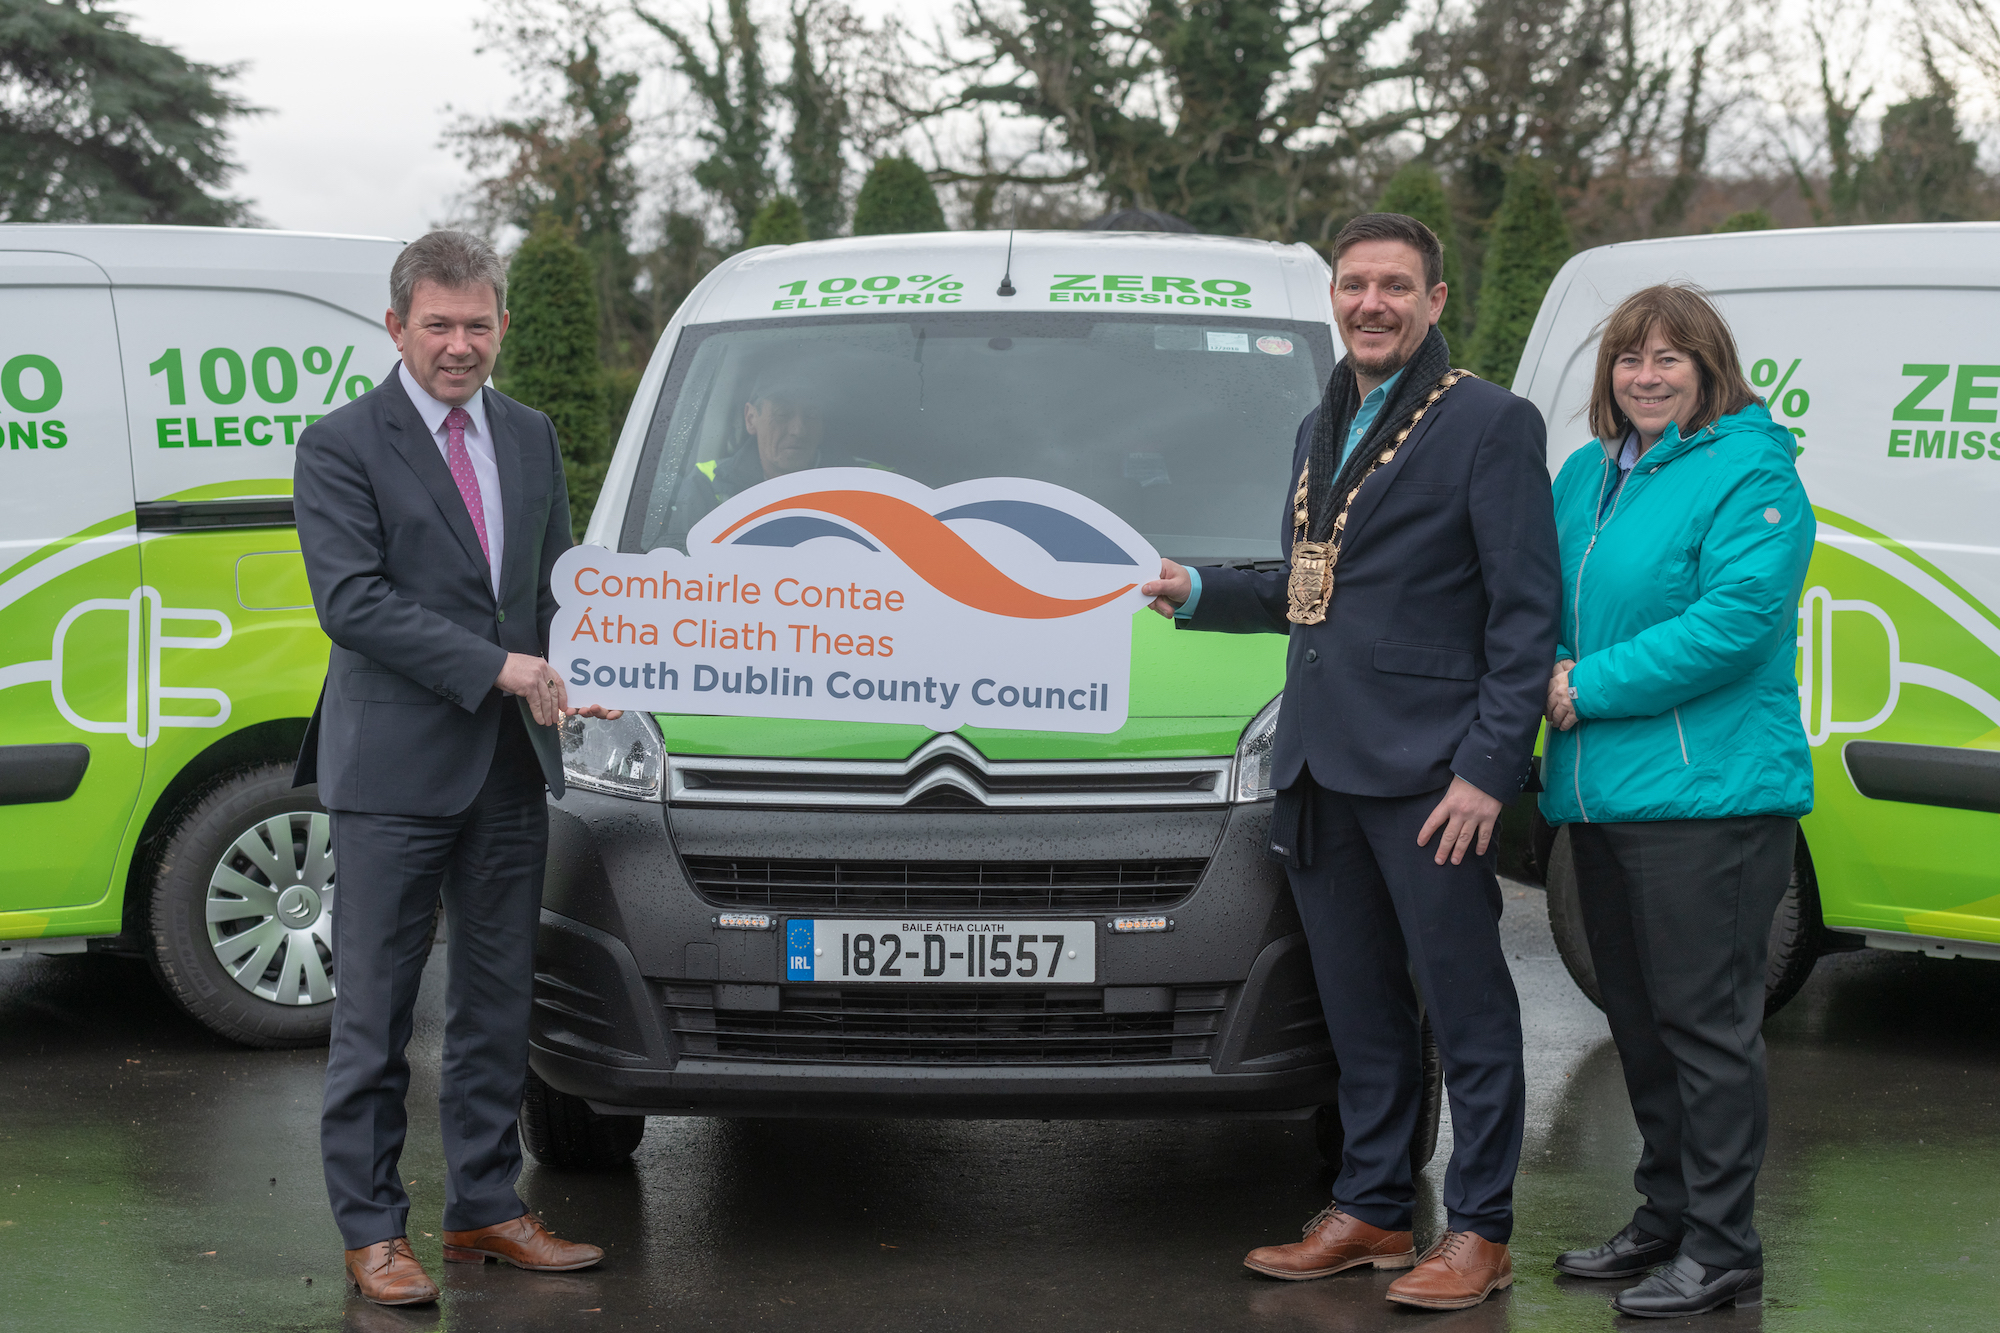 South Dublin County Council goes green